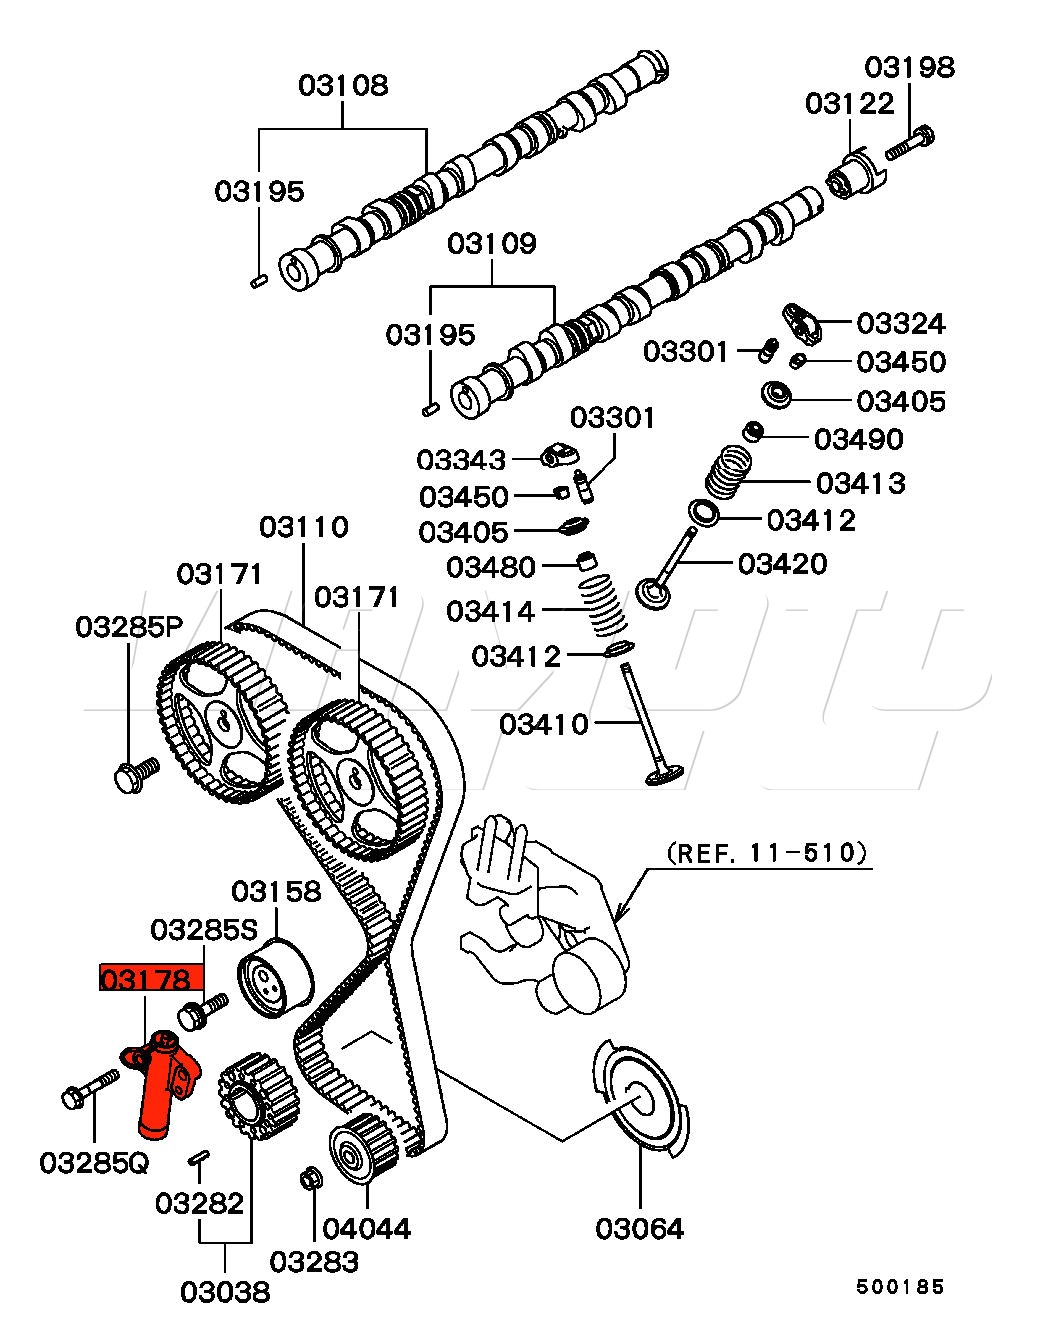 Mitsubishi Lancer Engine Schematic